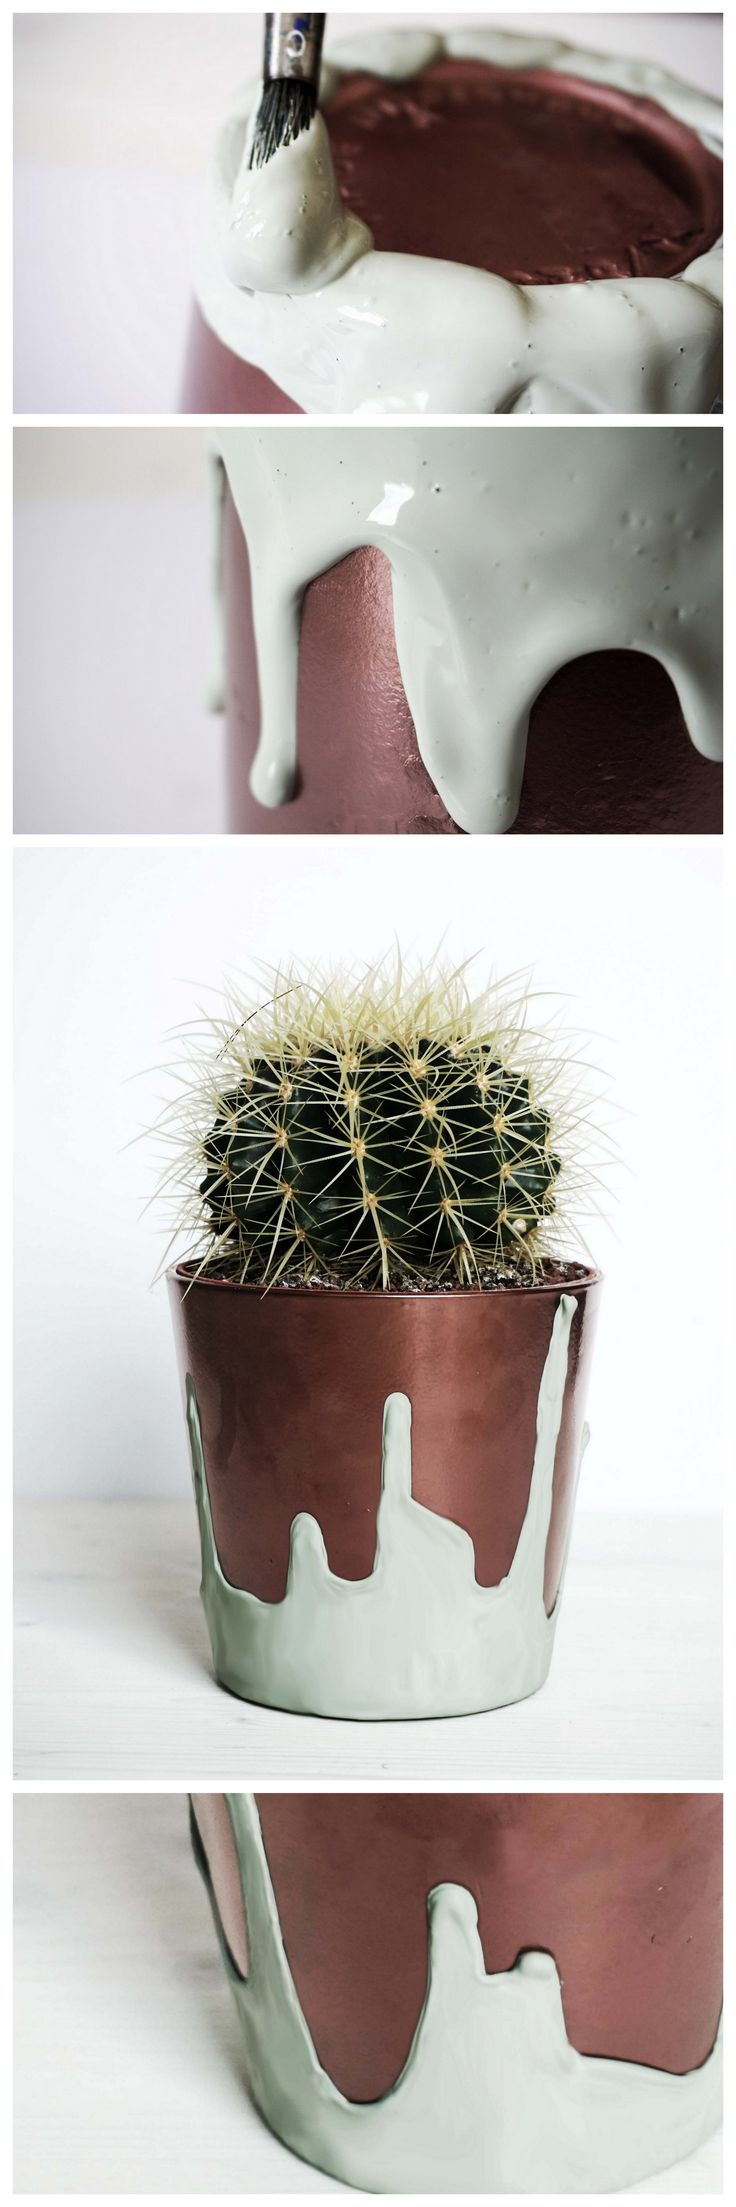 DIY Pot Upcycling with copper spray paint and icing (made by chalk paint) to create a new home for a succulent / cactus